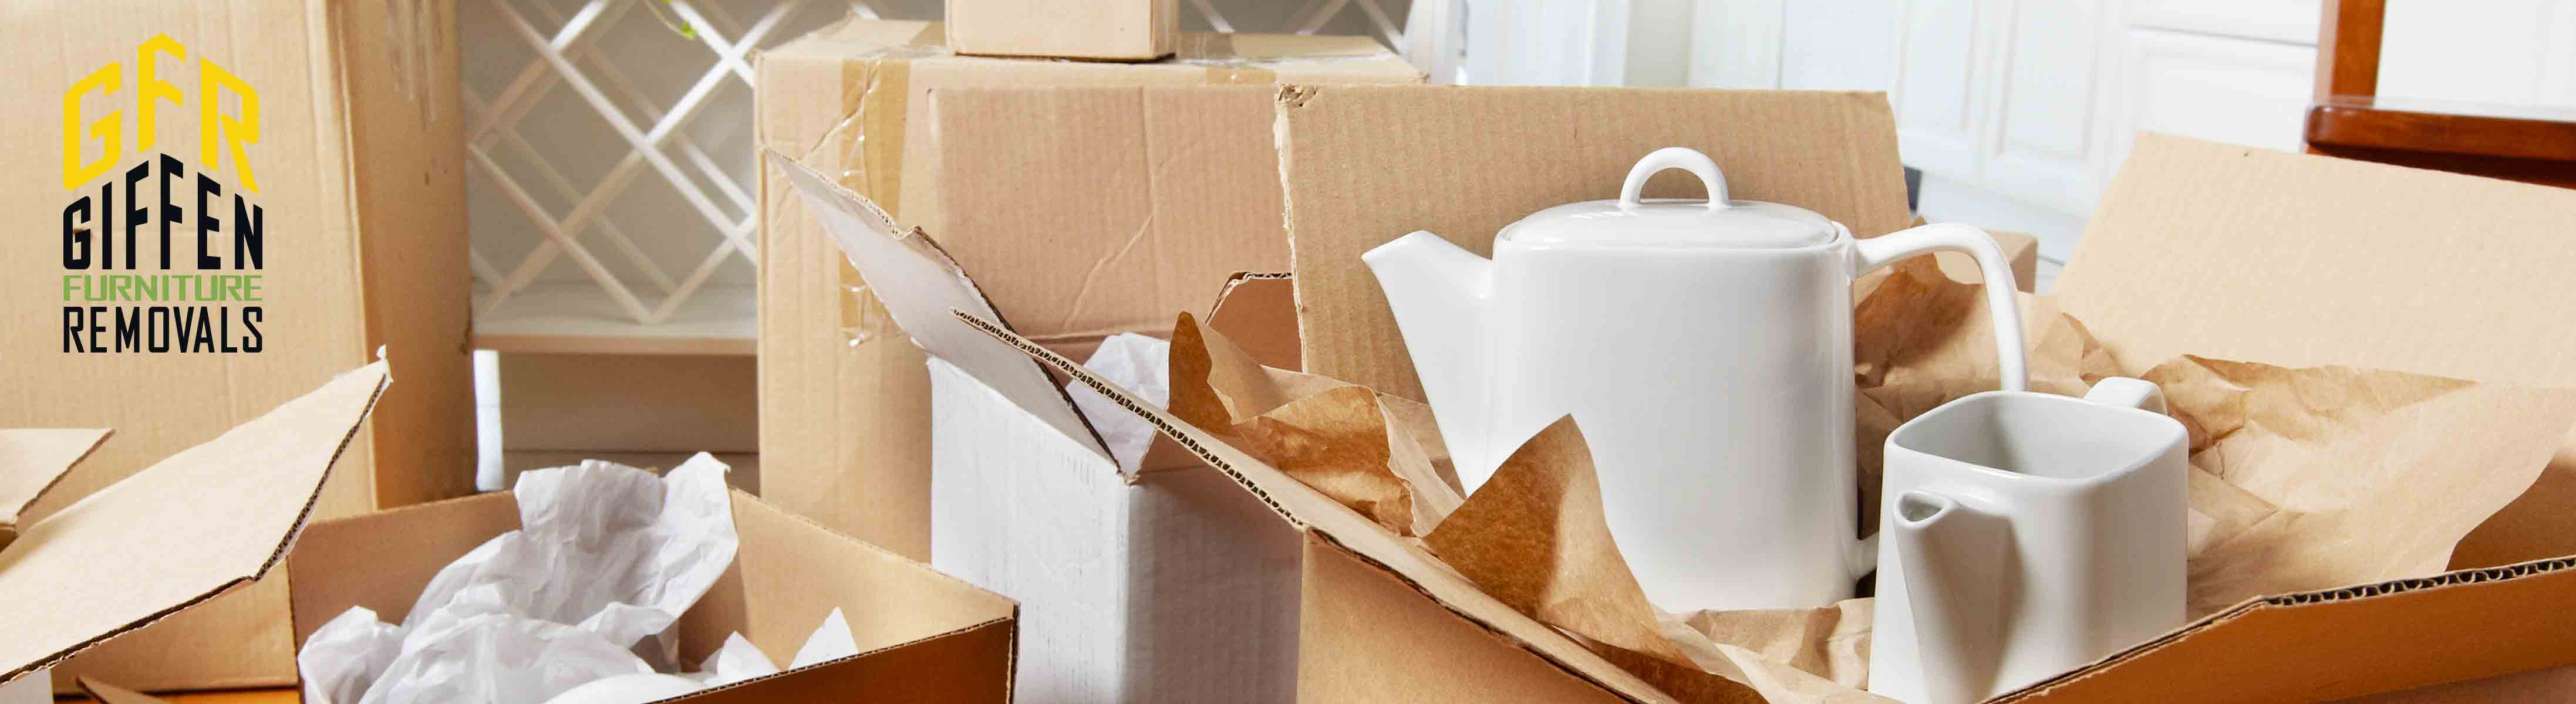 How To Effectively Pack Your Kitchen When Moving House - Giffen Furniture  Removals